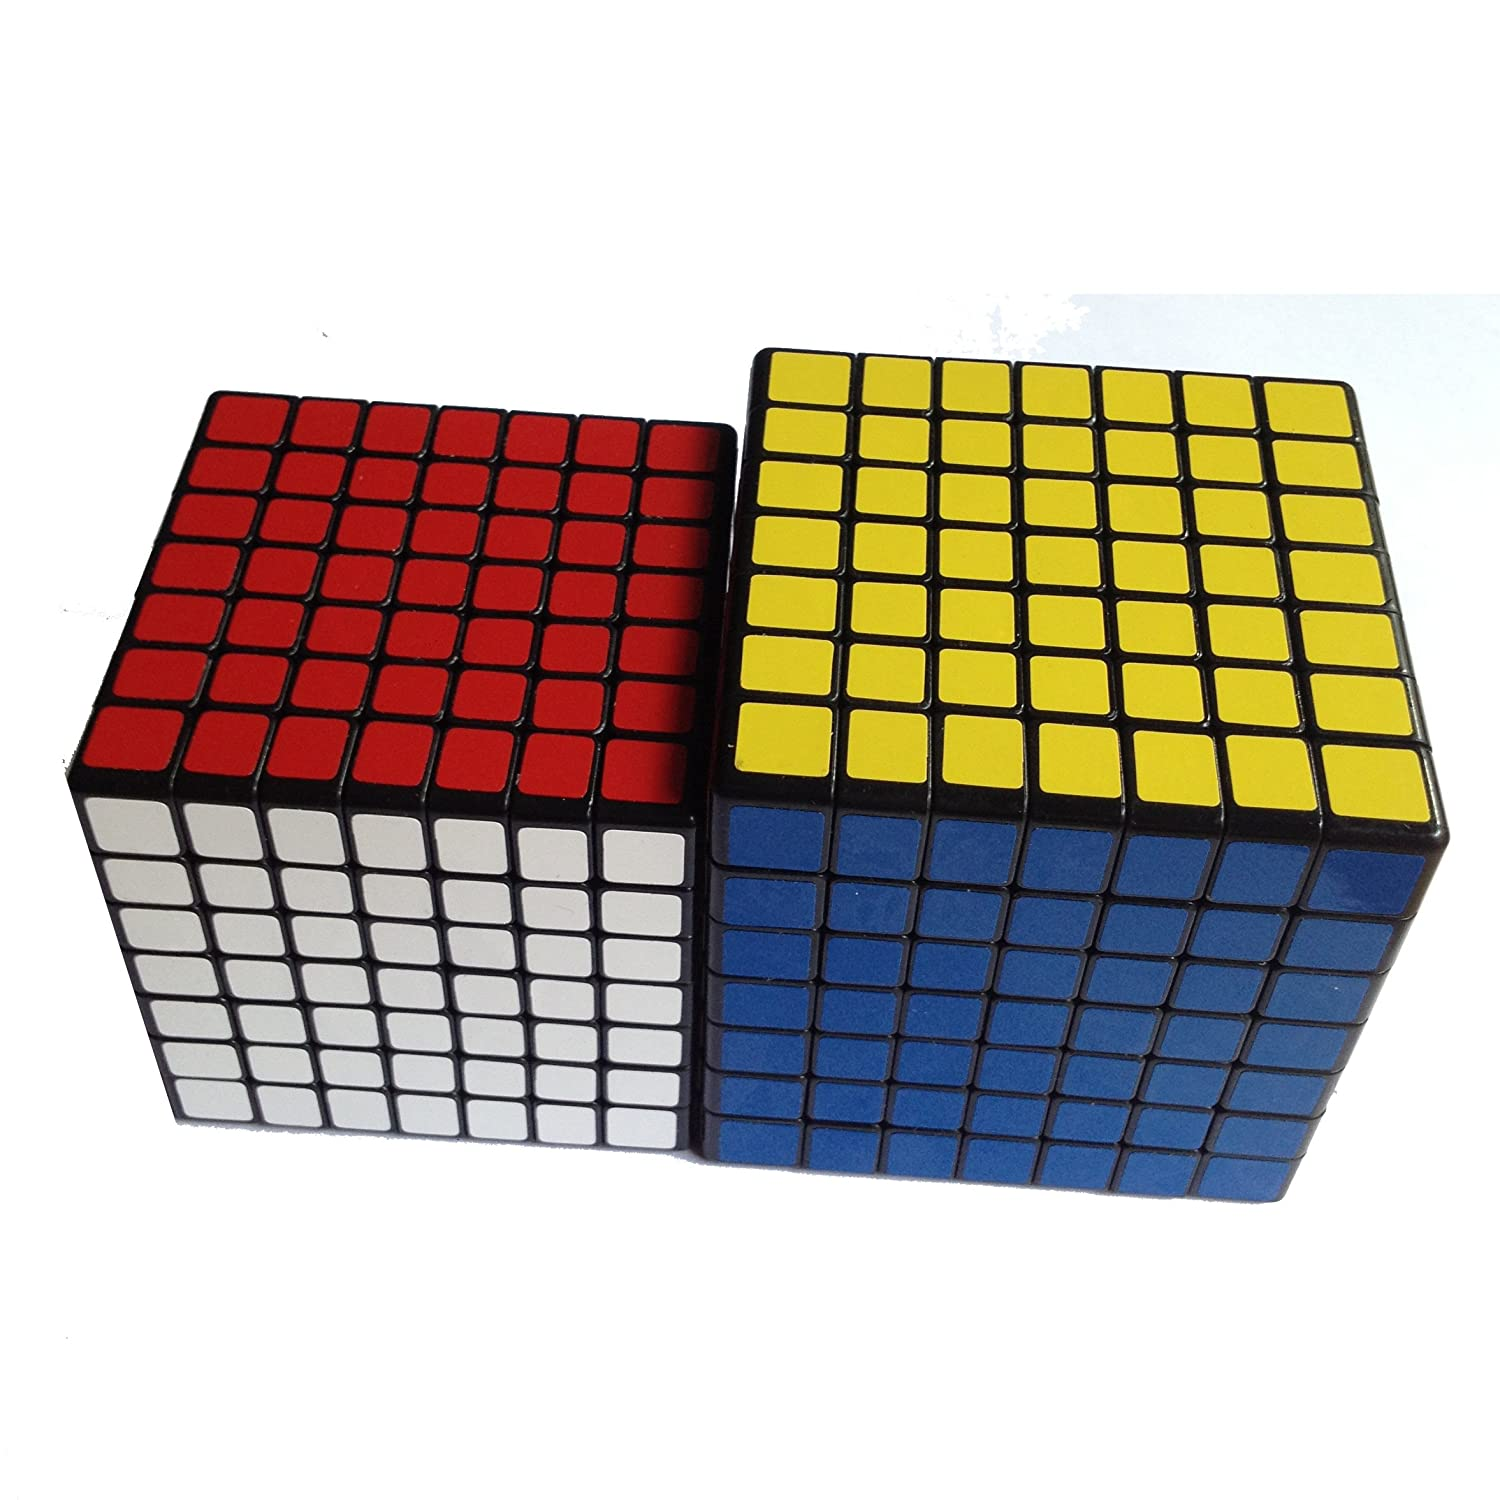 Best 7x7 Cube - Speed Cube Reviews | PuzzleDude